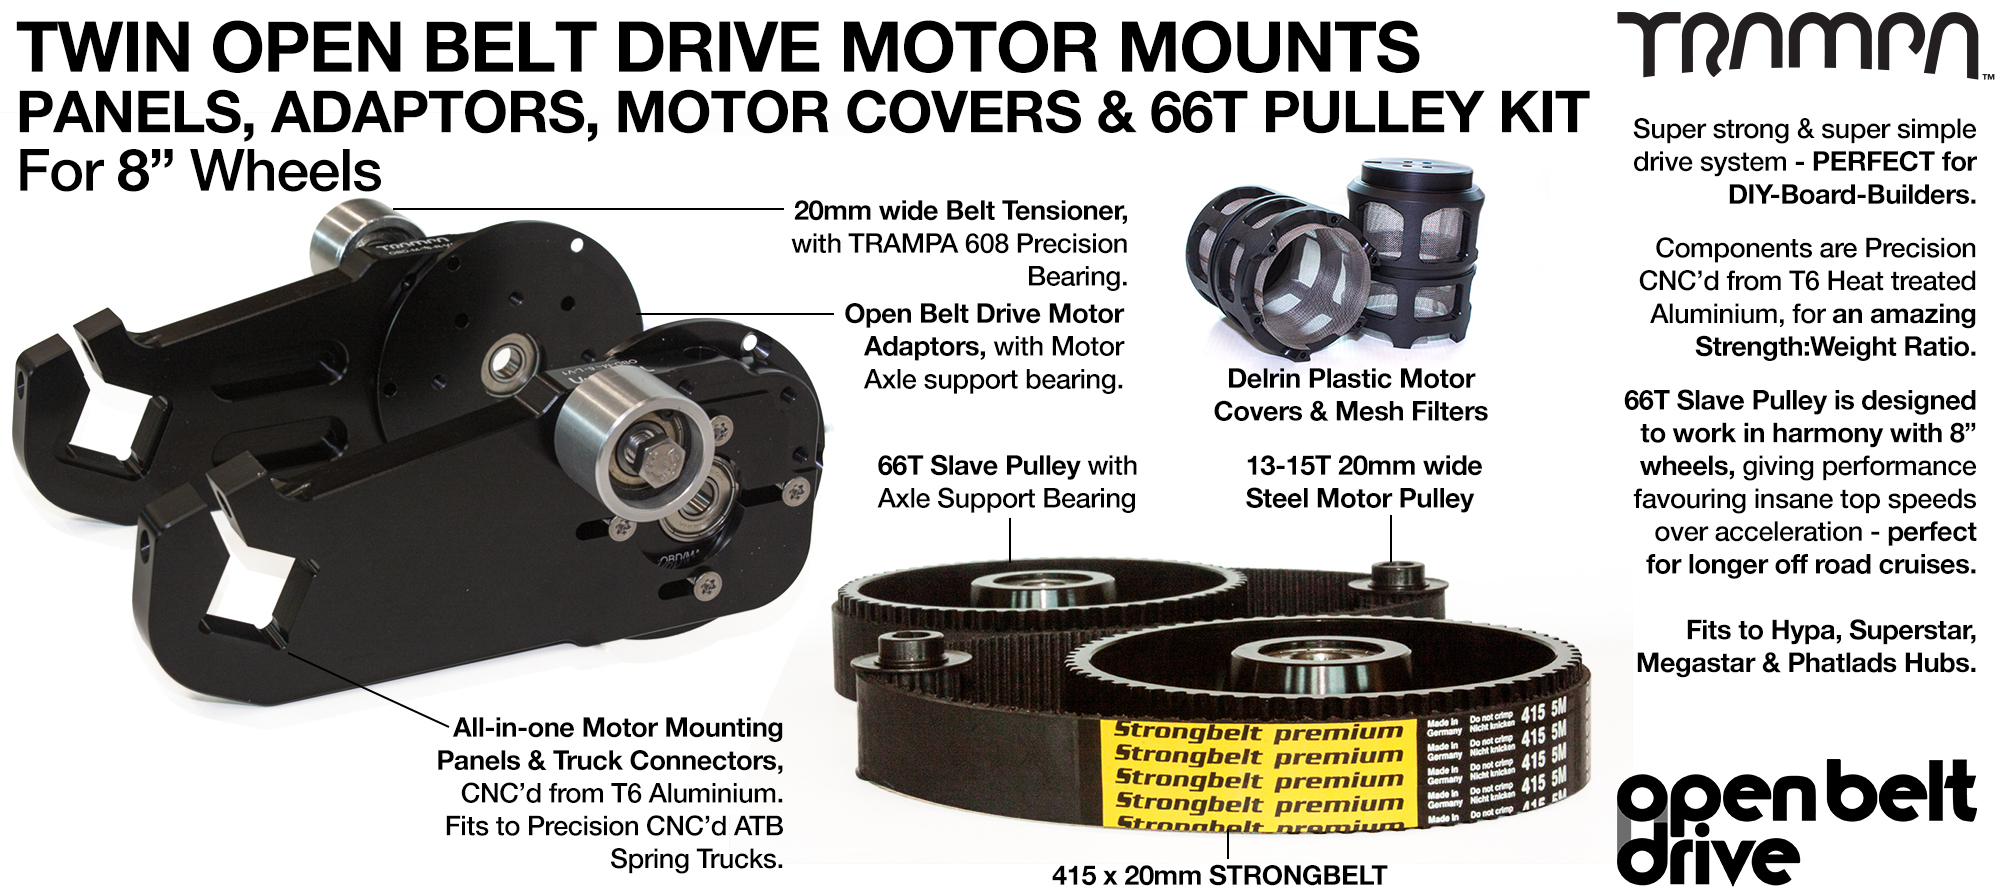 66T Open Belt Drive OBD Motor Mount with 66 tooth Pulley Kit for 8 inch Wheels & Motor Protection - TWIN